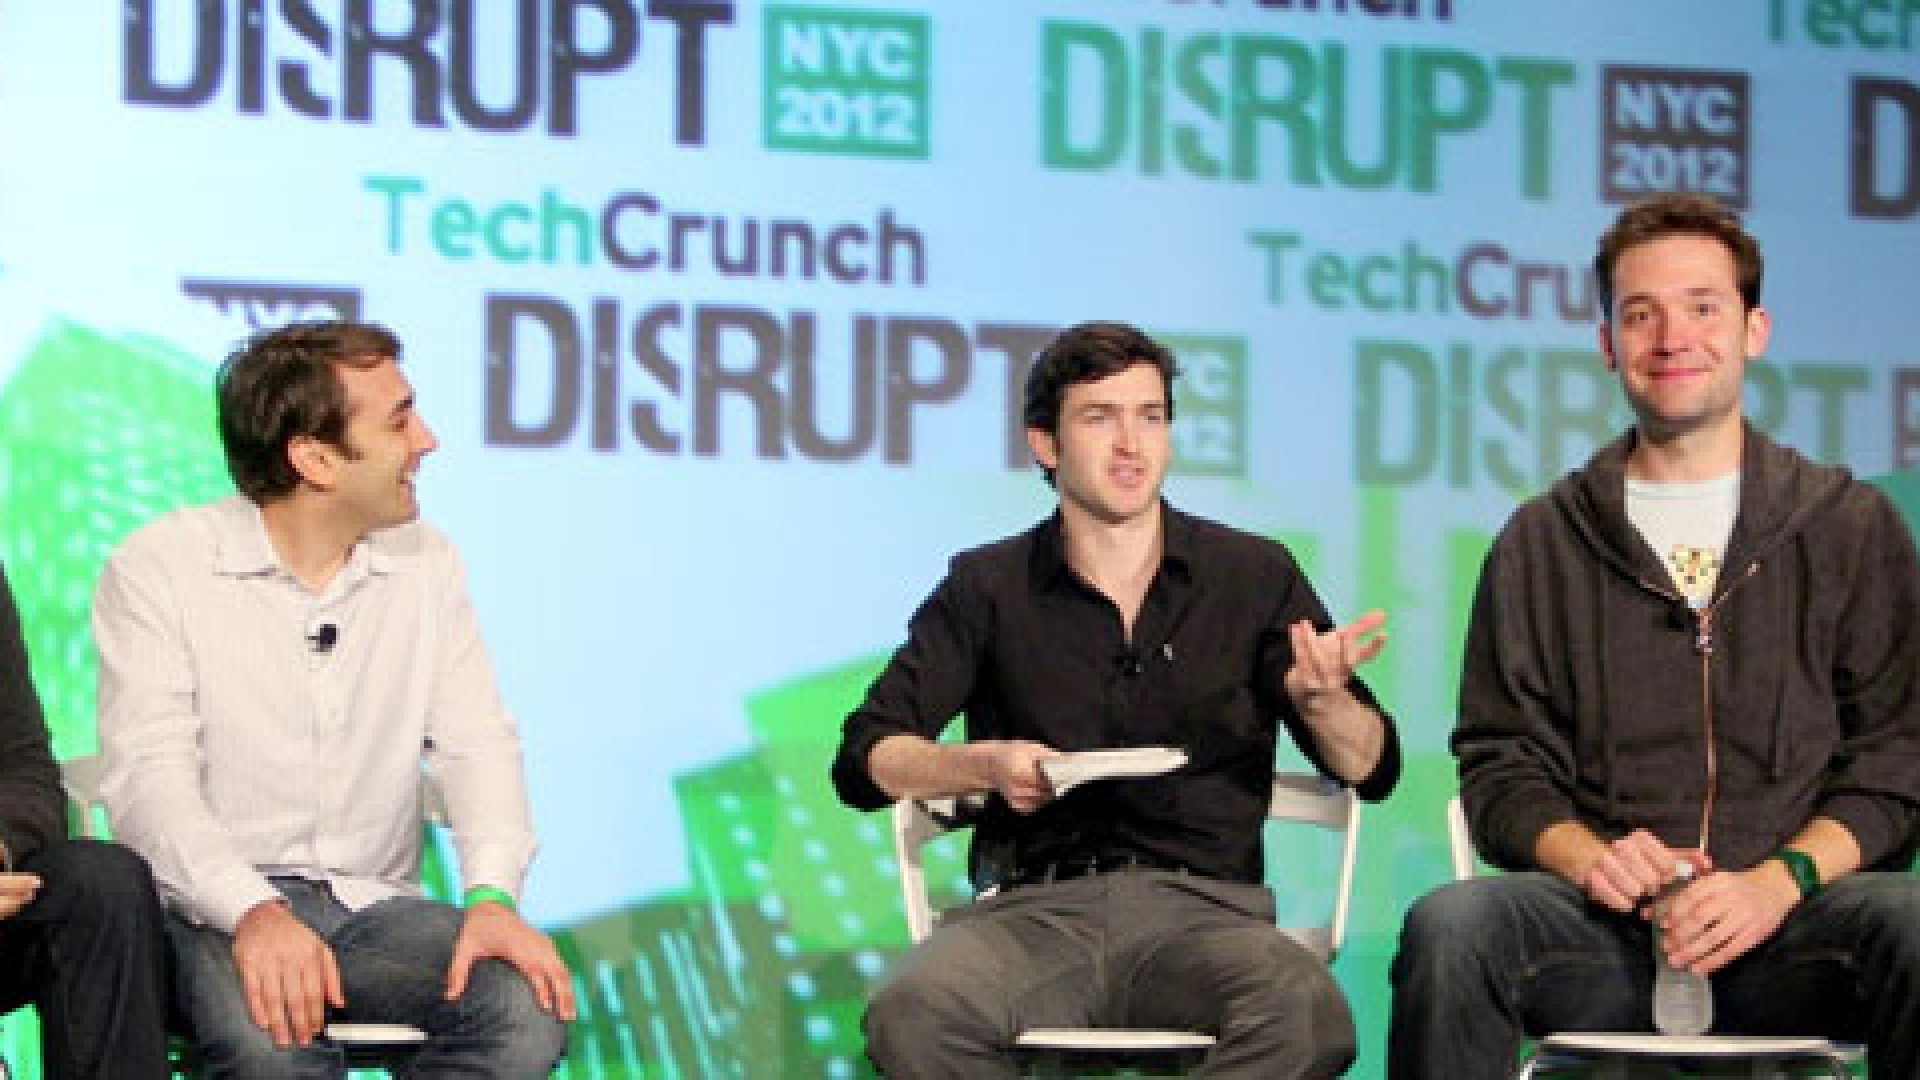 <b>The Disruptors.</b> From left: David Tisch (TechStars), Jake Schwartz (General Assembly), Jason Kincaid (TechCrunch), Alexis Ohanian (Reddit).